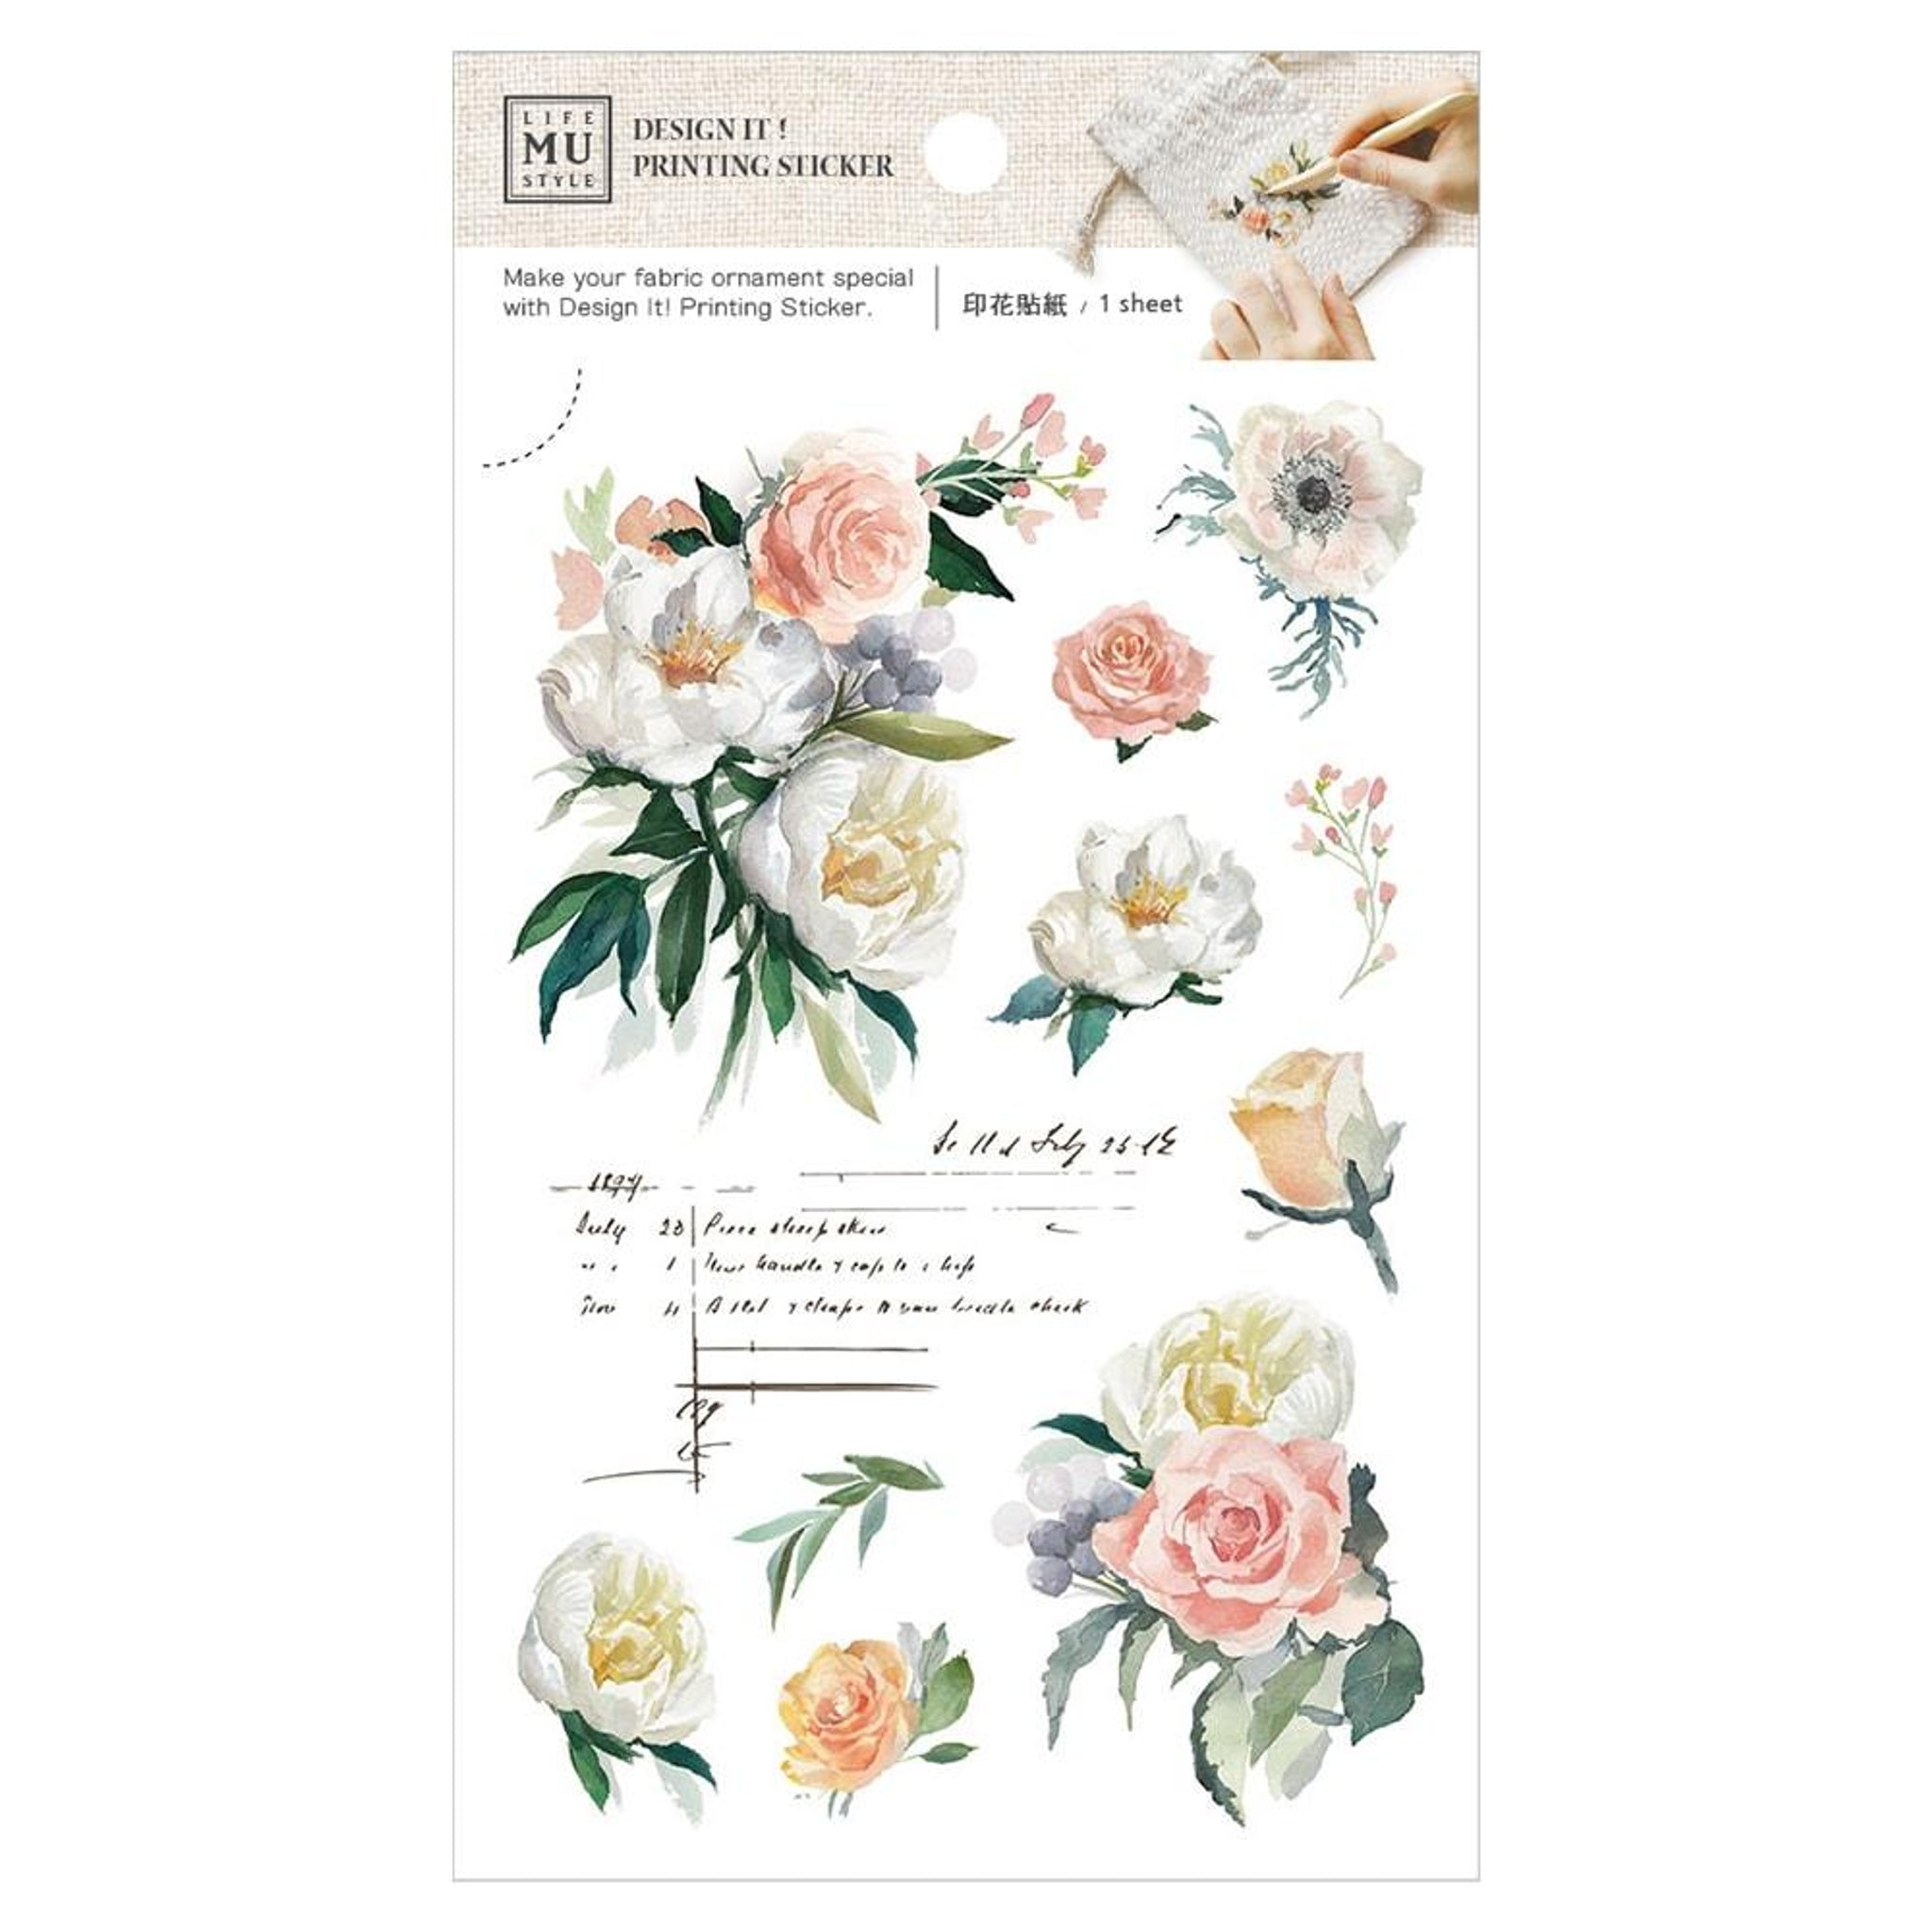 MU Craft Printing Sticker & Pouch Set Pink & White Roses 009